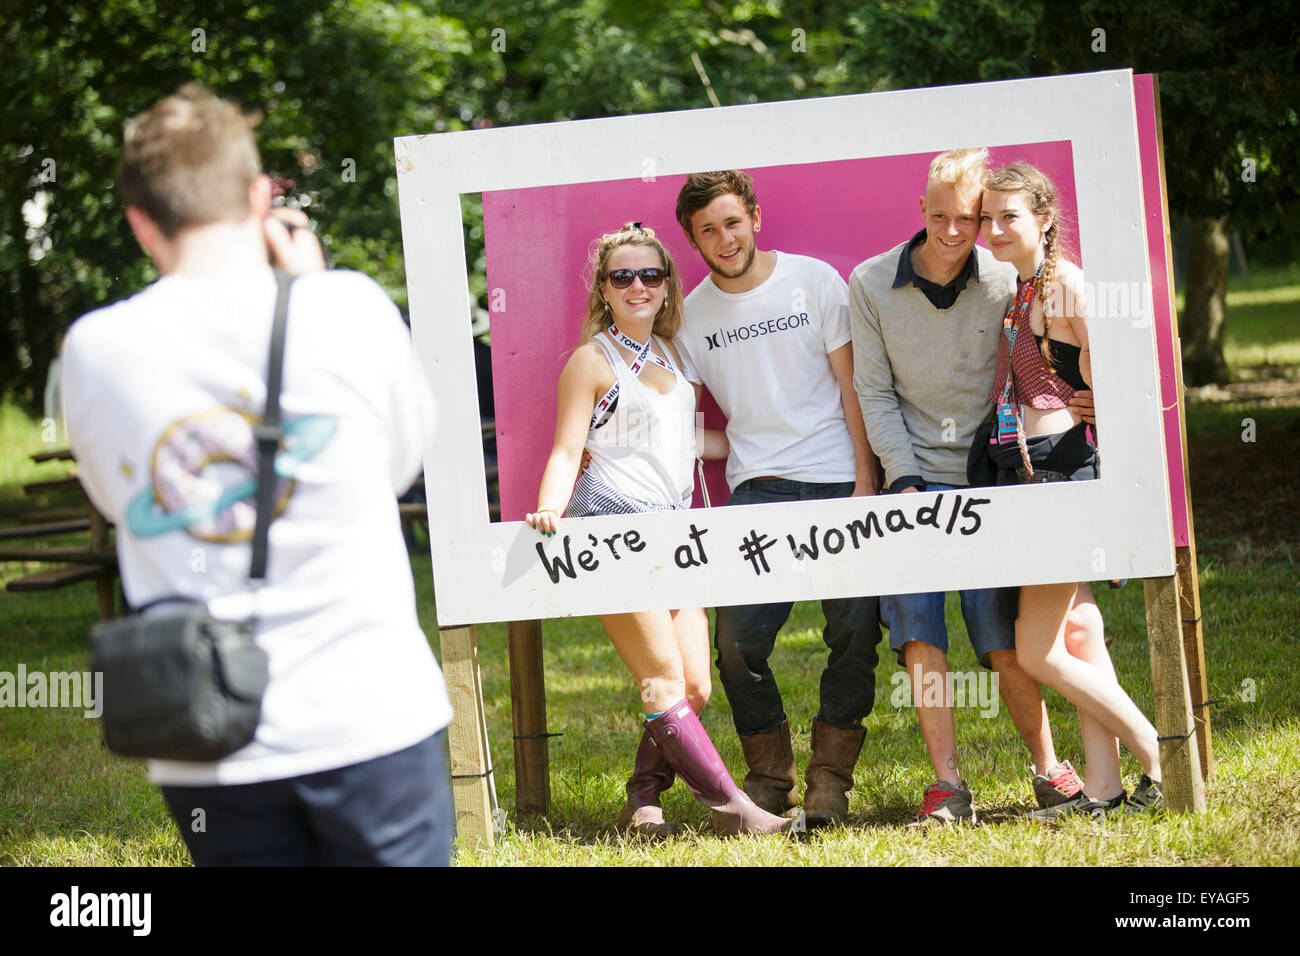 Charlton Park, Wiltshire, UK. 25th July, 2015. People have their photos taken in selfie frames in the sun at WOMAD - Stock Image